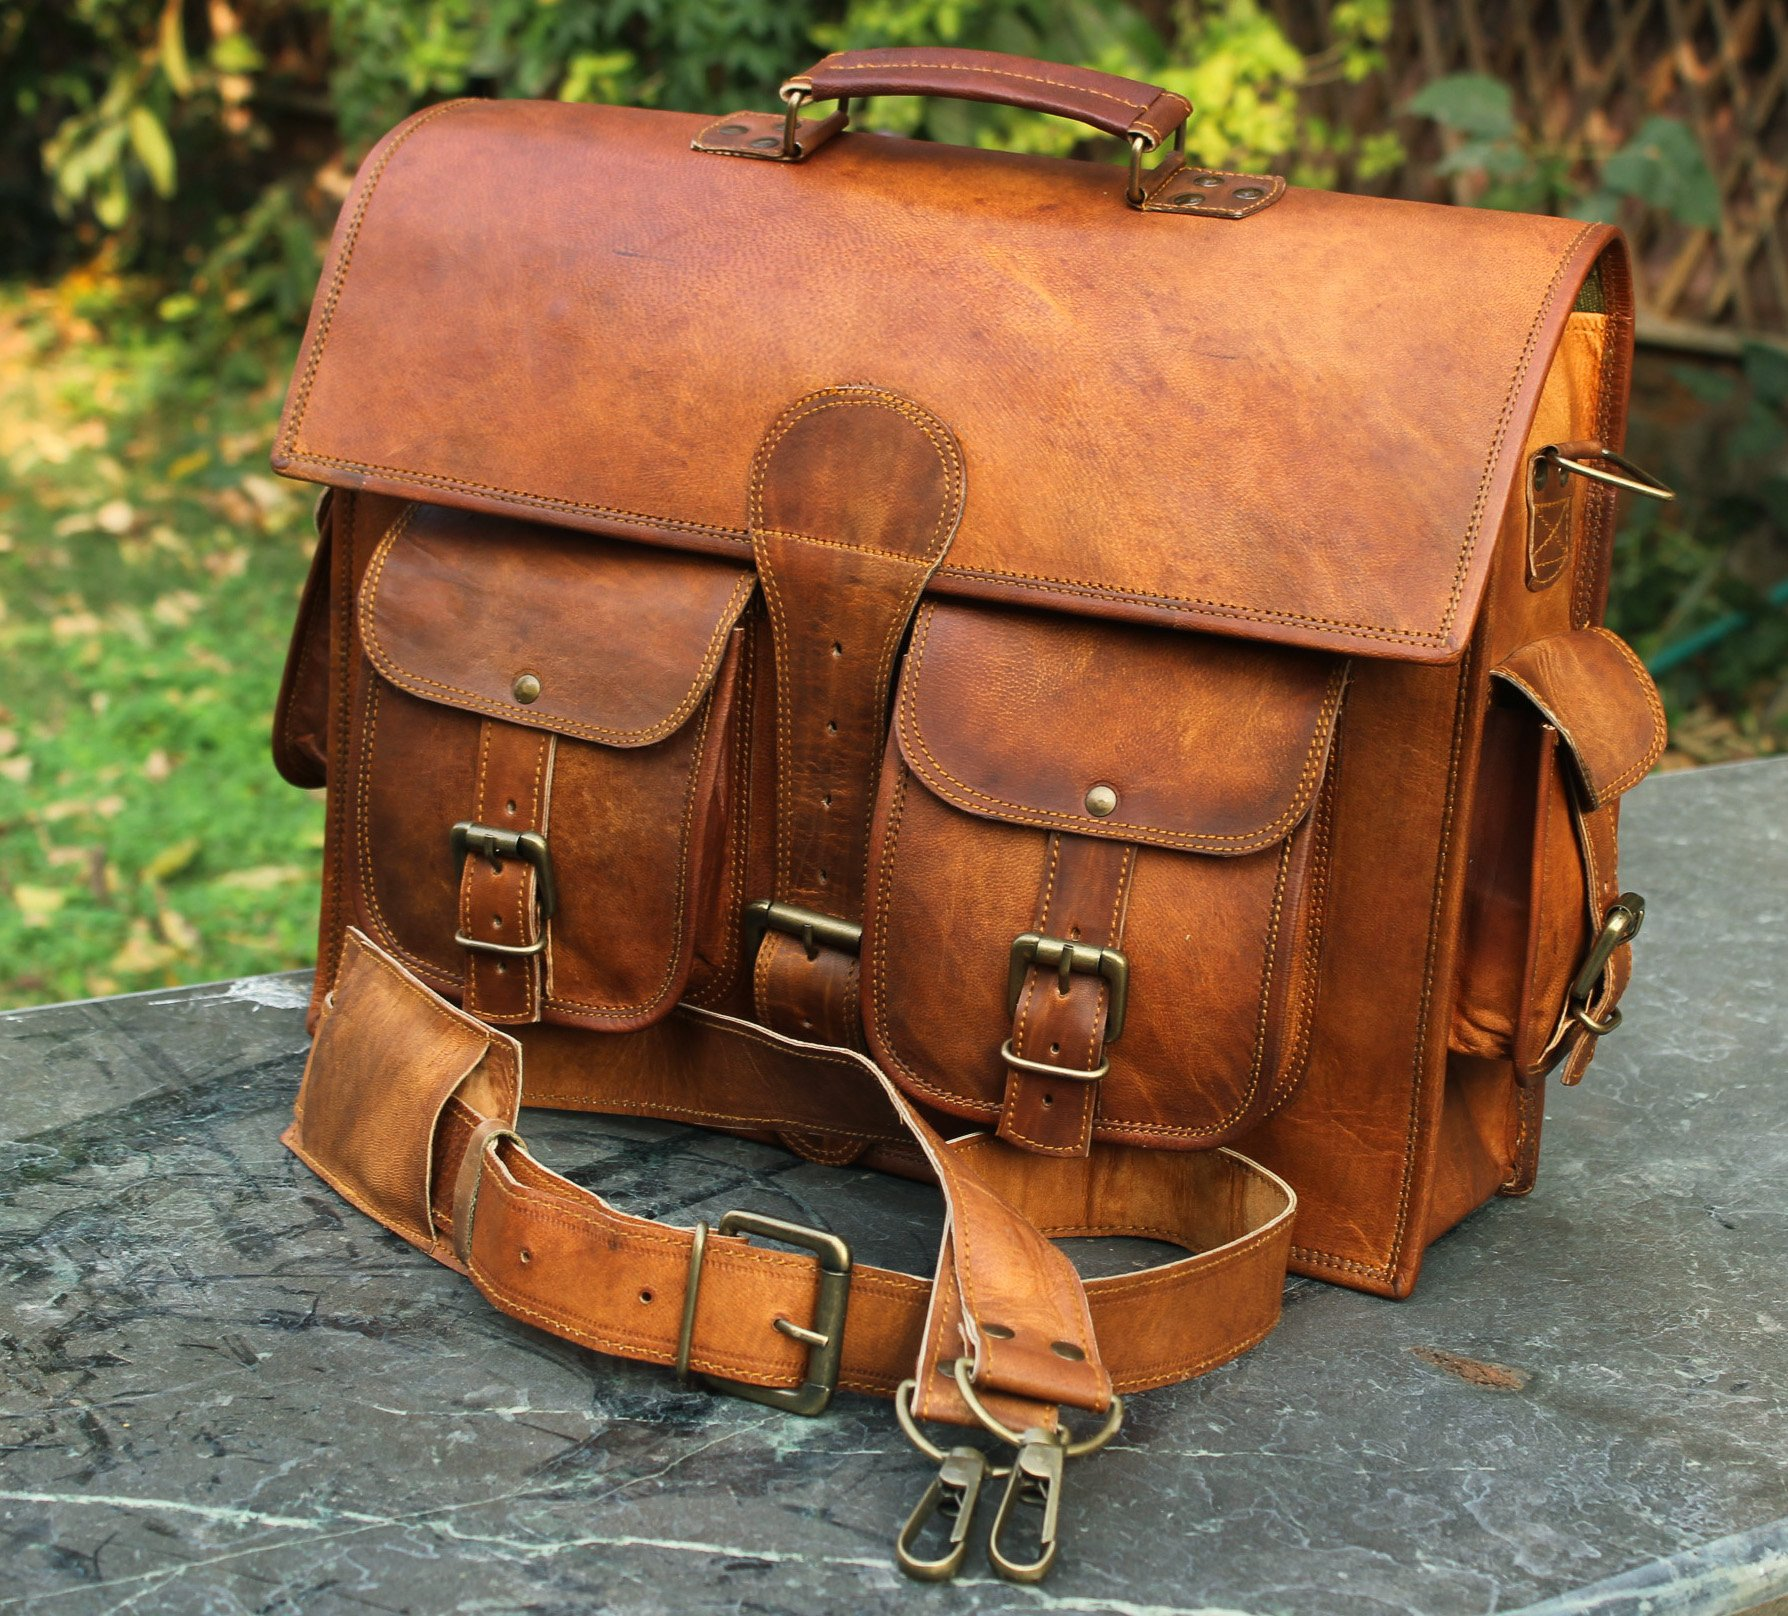 48bf7f8e26 Buy Leather Messenger Handmade Bag Laptop Bag Satchel Bag Padded Messenger  Bag School Bag 16X12X5 Inches Brown  hellip  in Cheap Price on m.alibaba.com